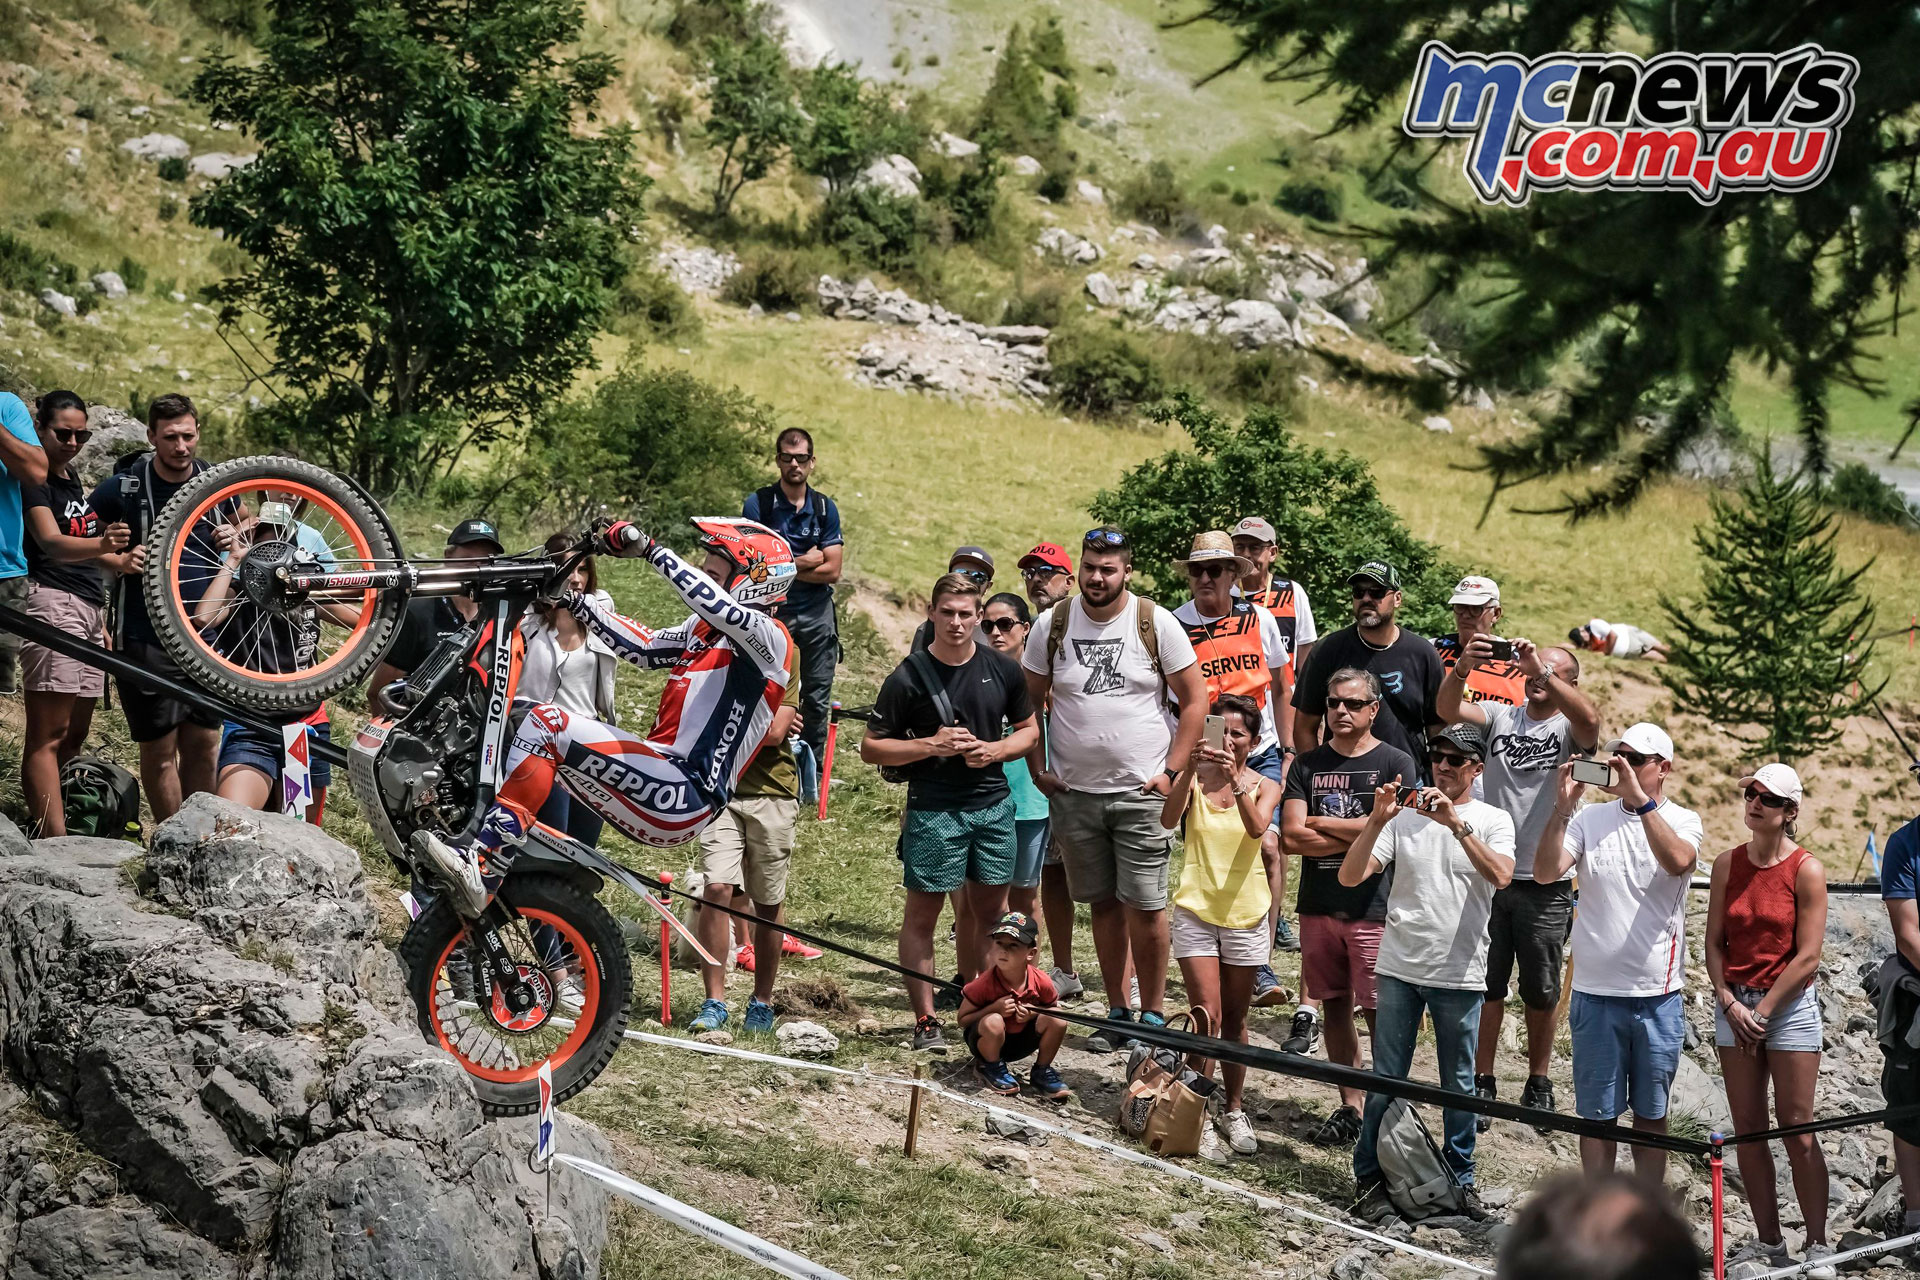 trialgp auron france Toni Bou